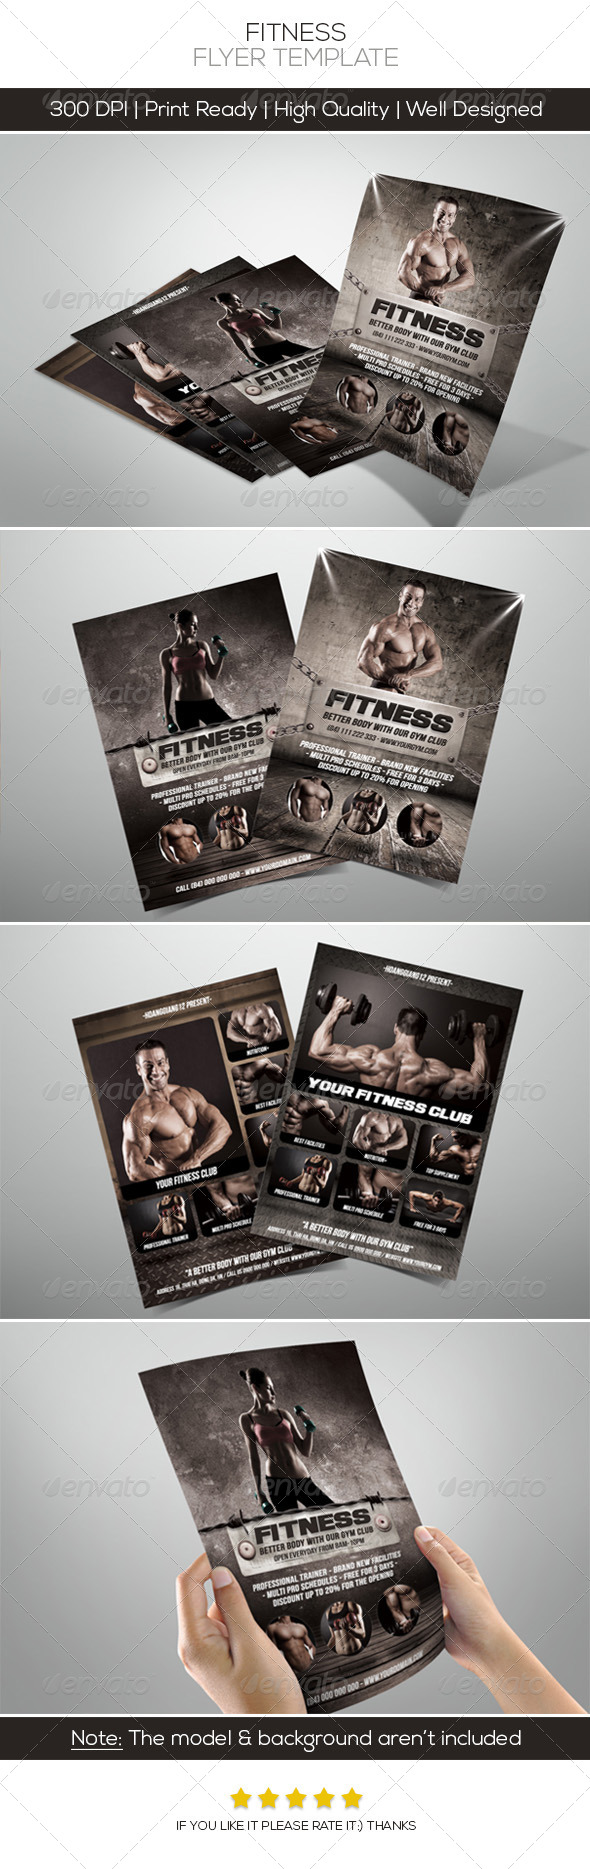 Premium Fitness Flyers - Commerce Flyers